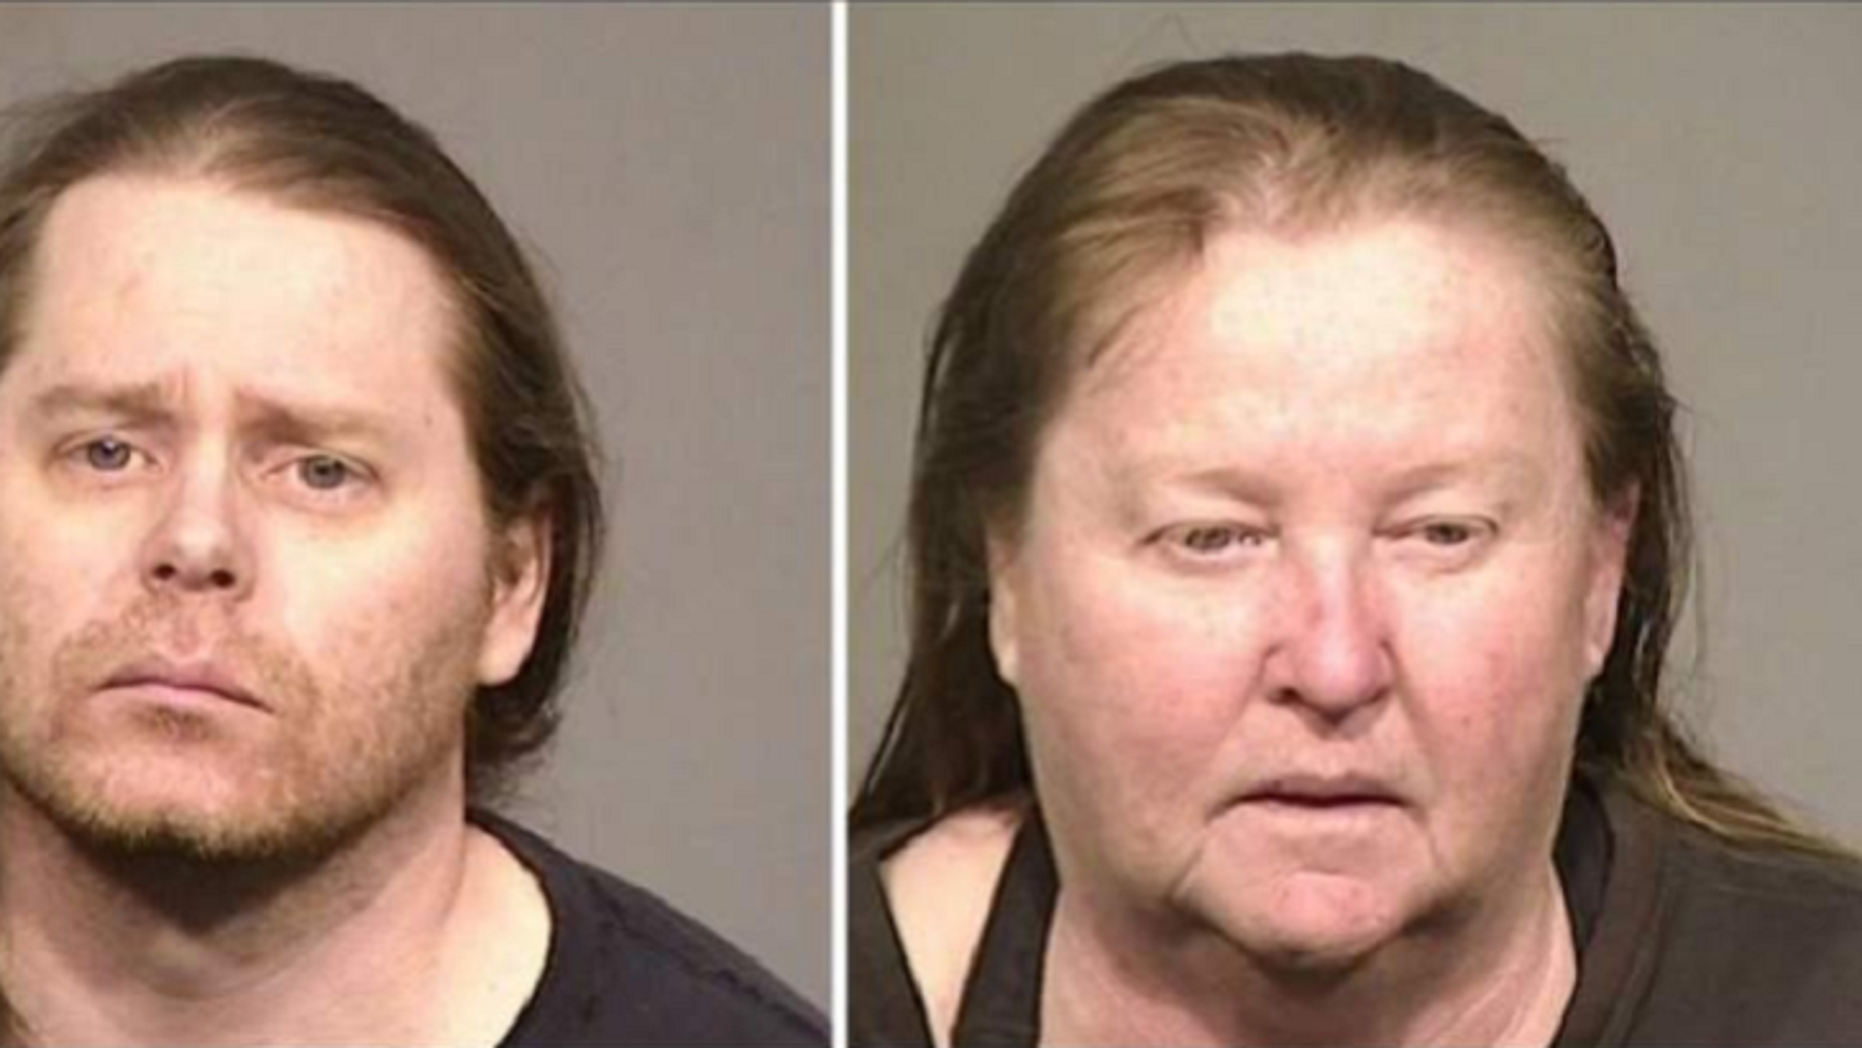 David Romesburg and his mother Fay Romesburg allegedly ran a prositution business in Sonoma County, Calif.